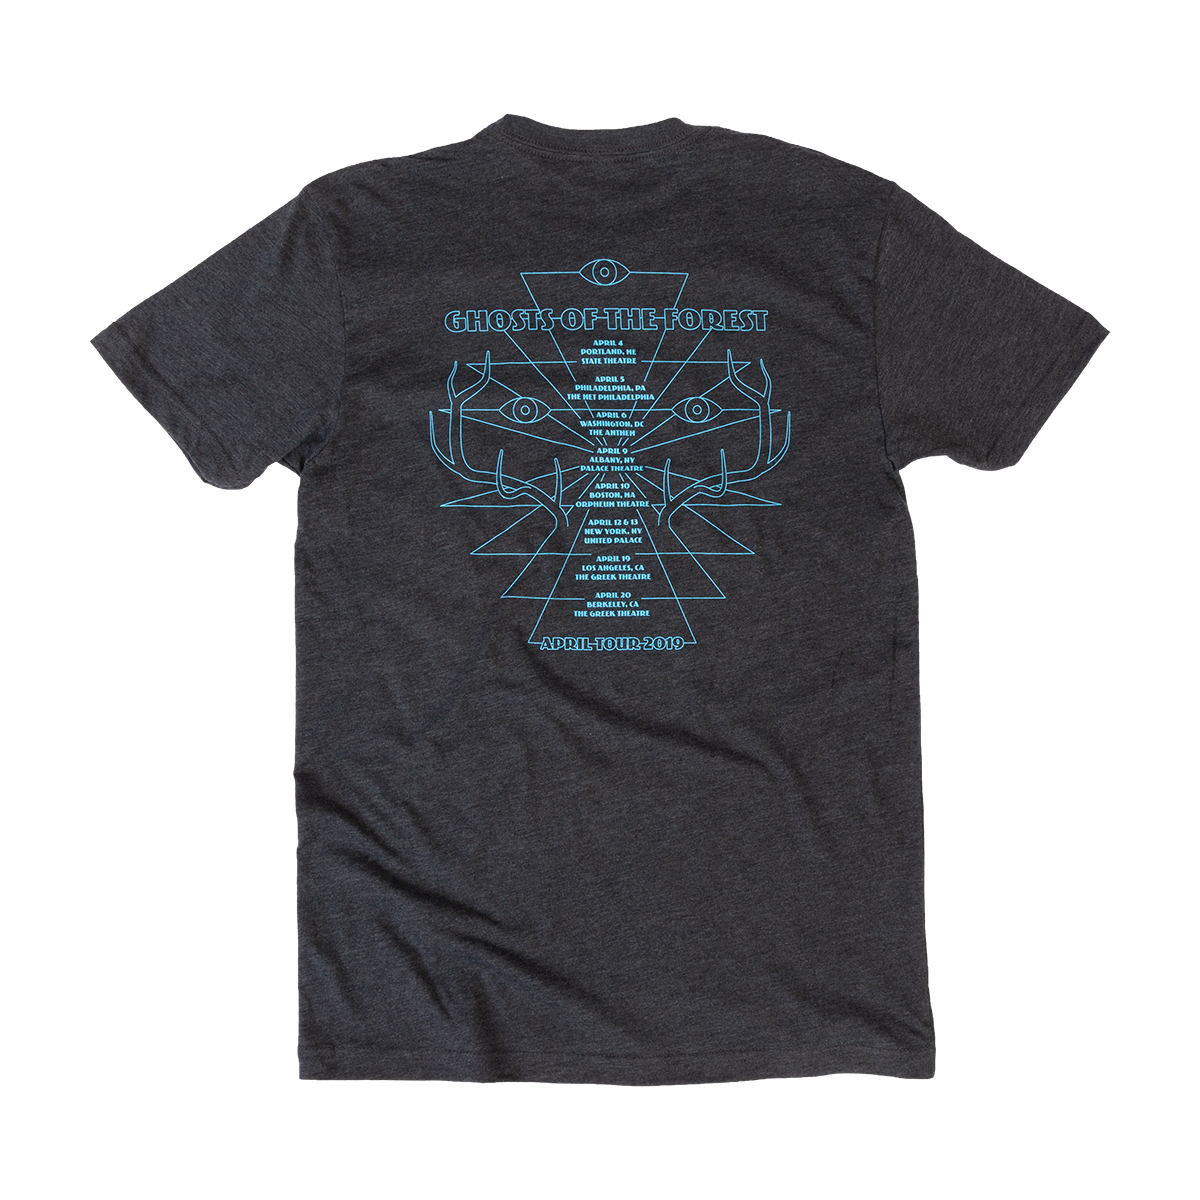 Ghosts of the Forest Horns Tour Tee